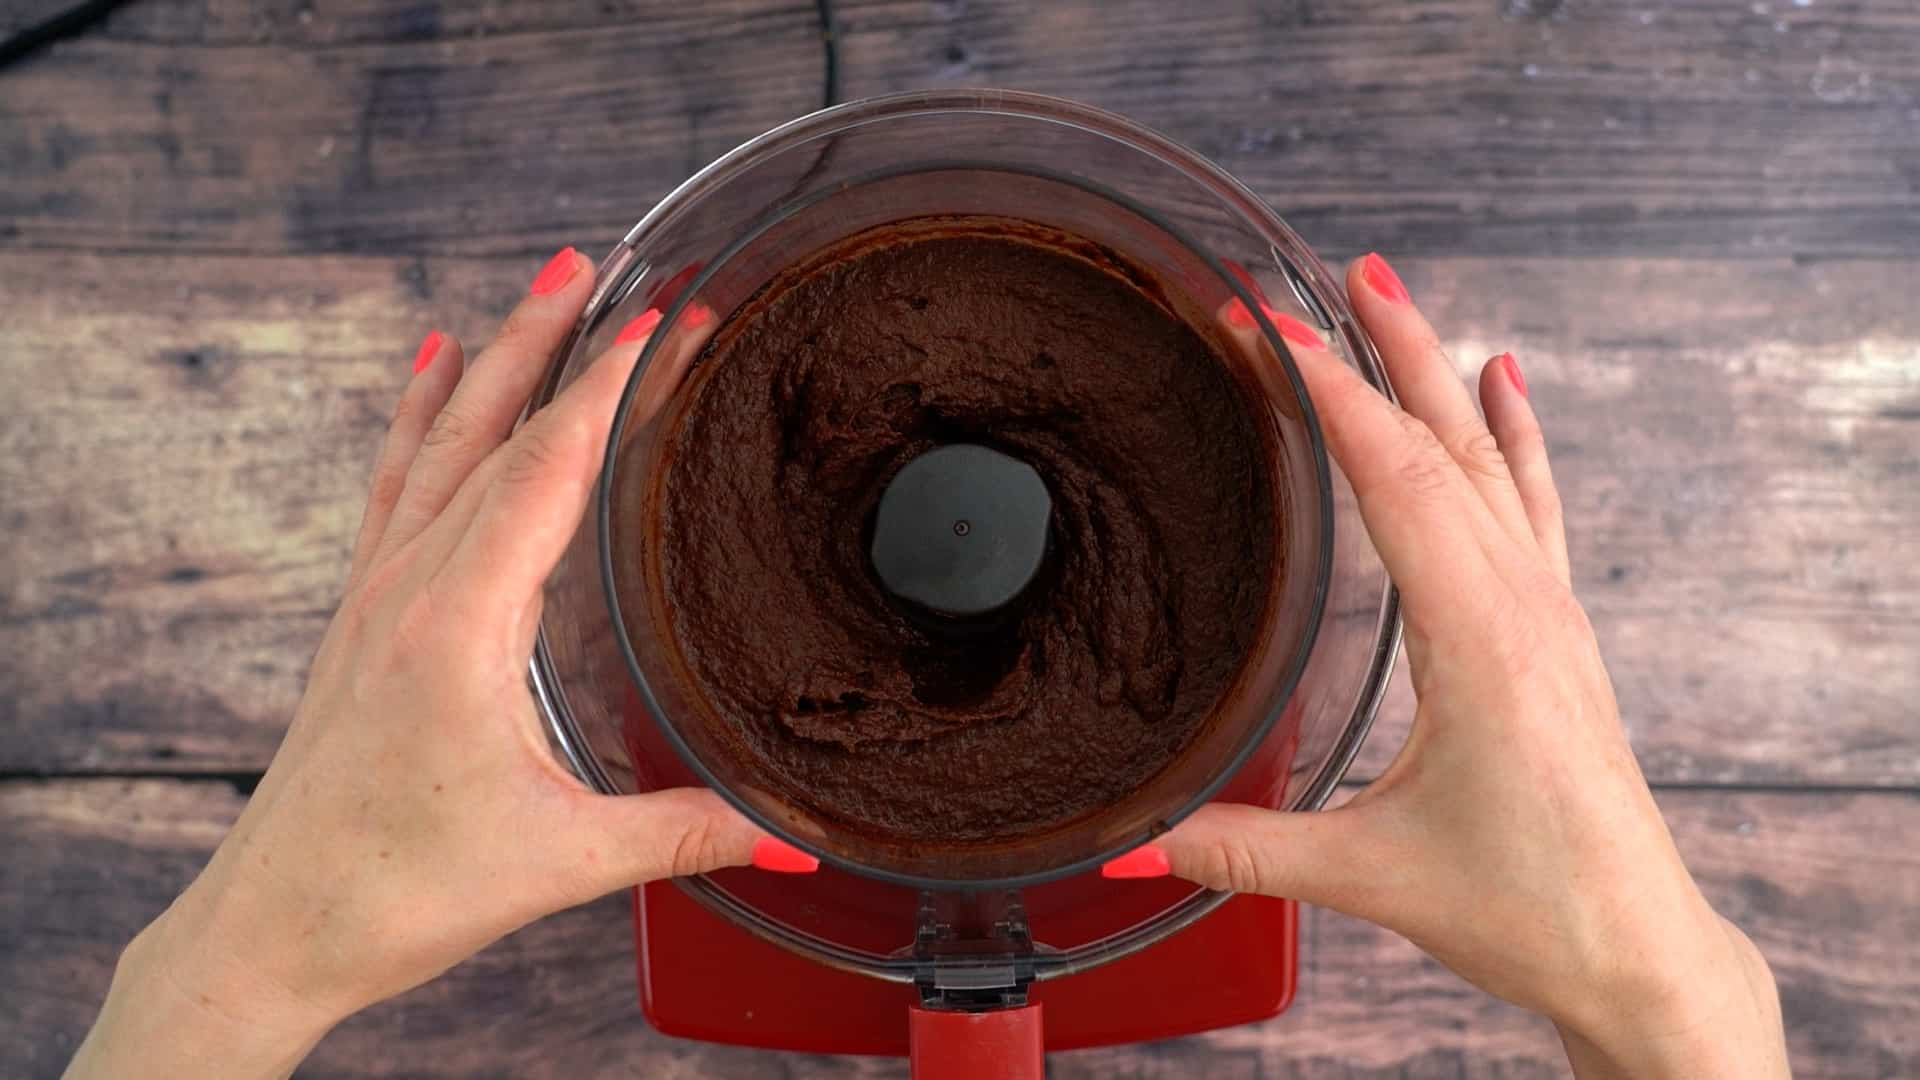 Smooth chocolate chickpea dip in the small bowl of a food processor.